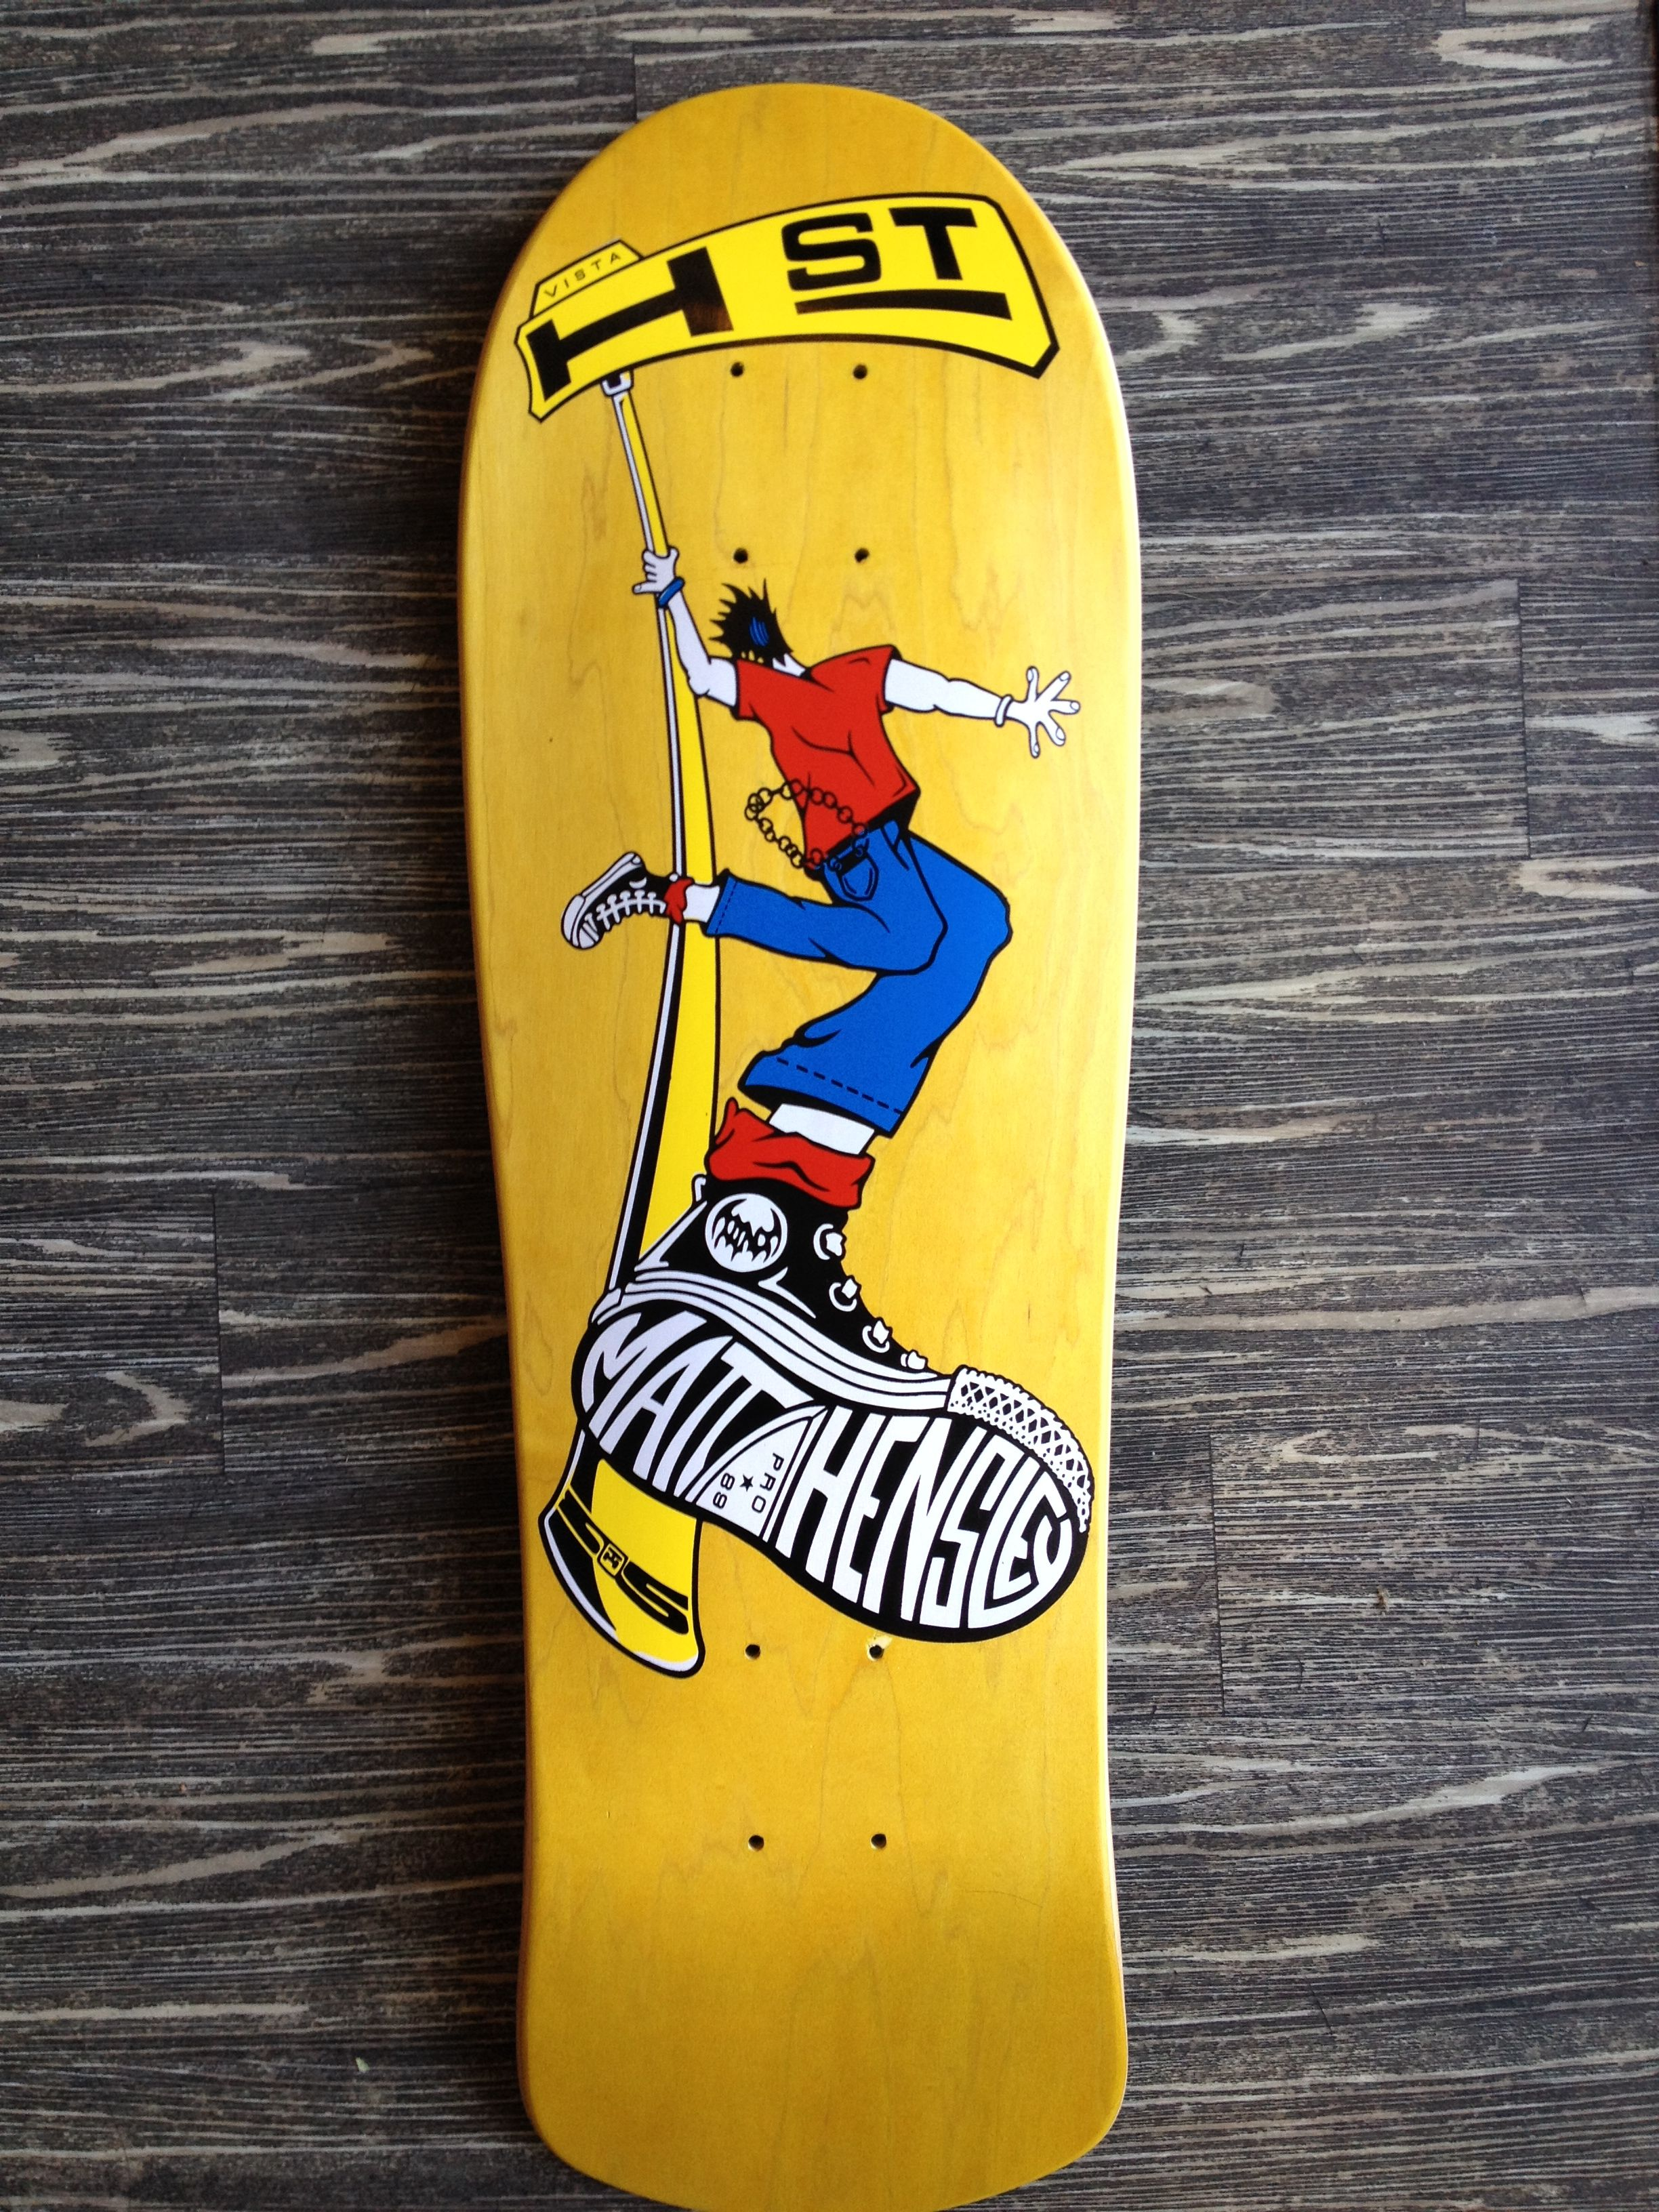 Skateboard Headboard matt hensley | skateboard deck | pinterest | skateboard and